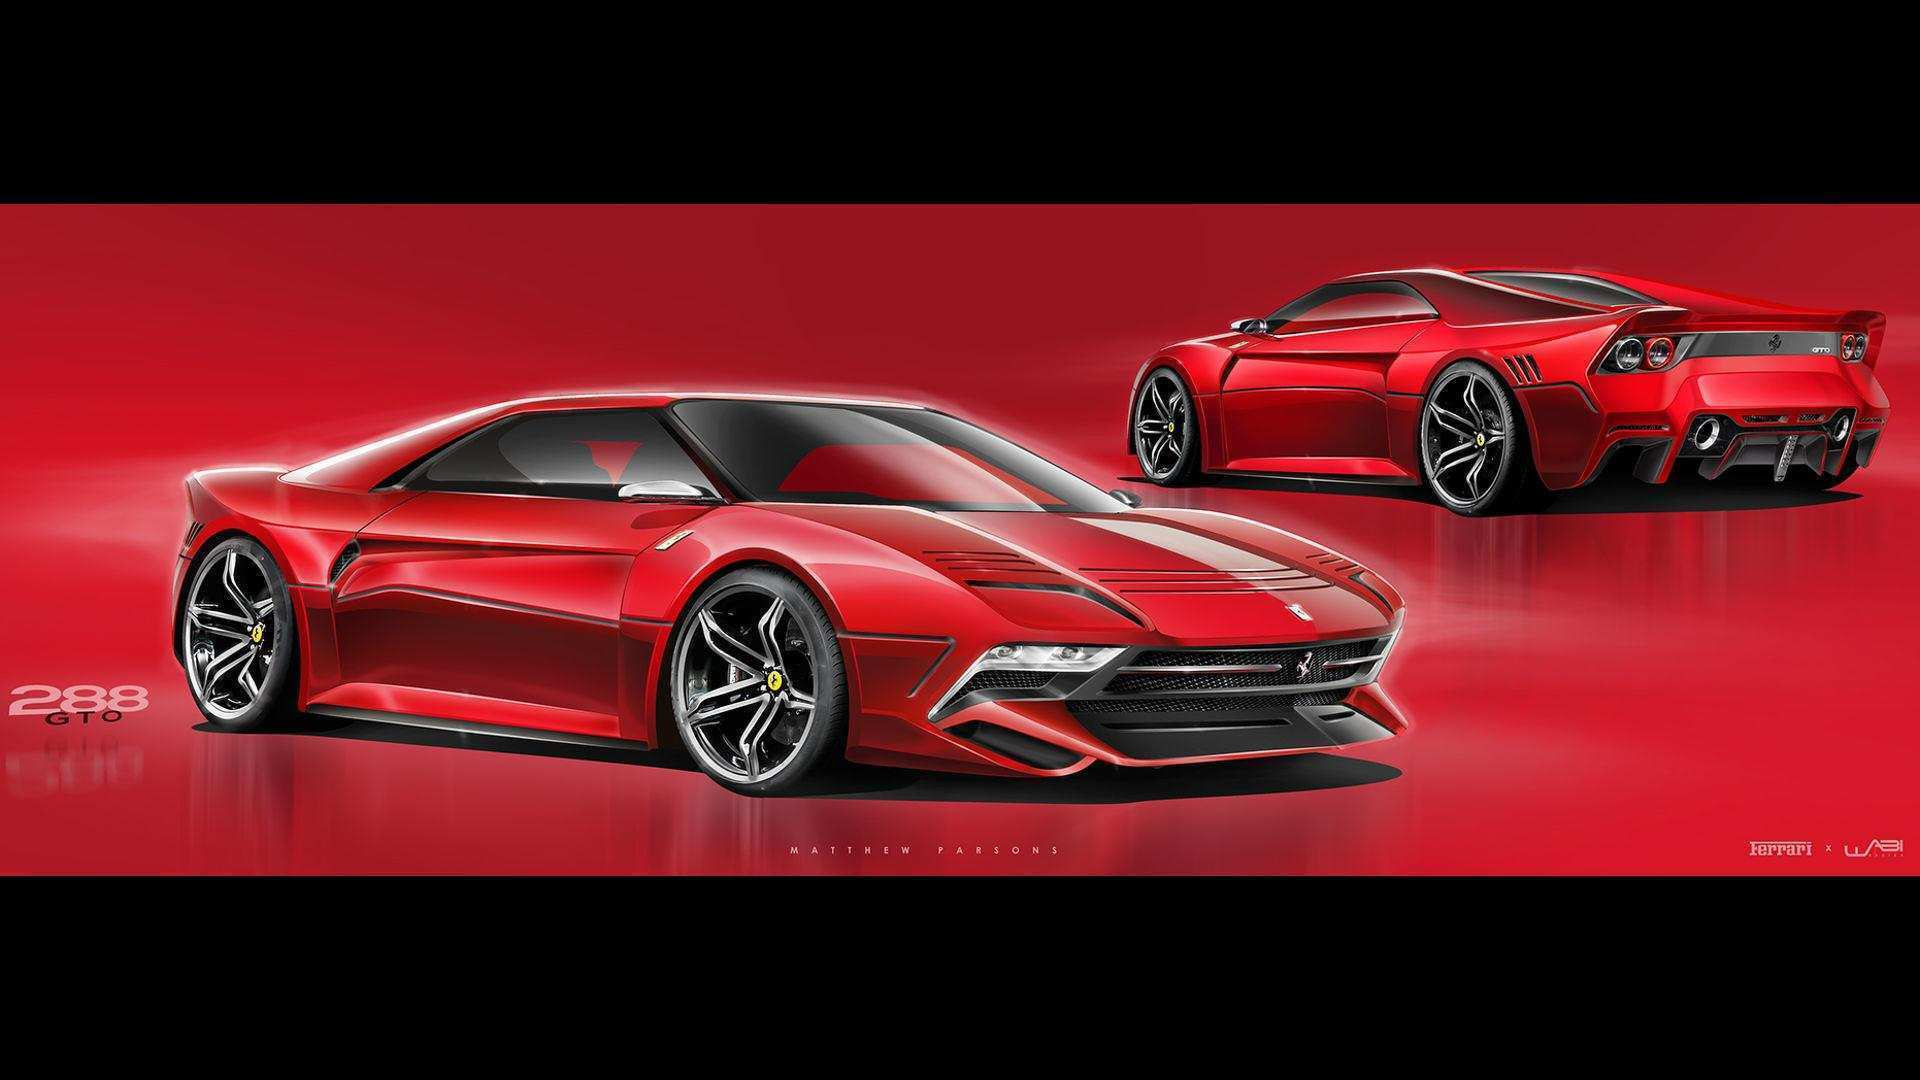 16 All New 2020 Ferrari 288 Gto New Review for 2020 Ferrari 288 Gto